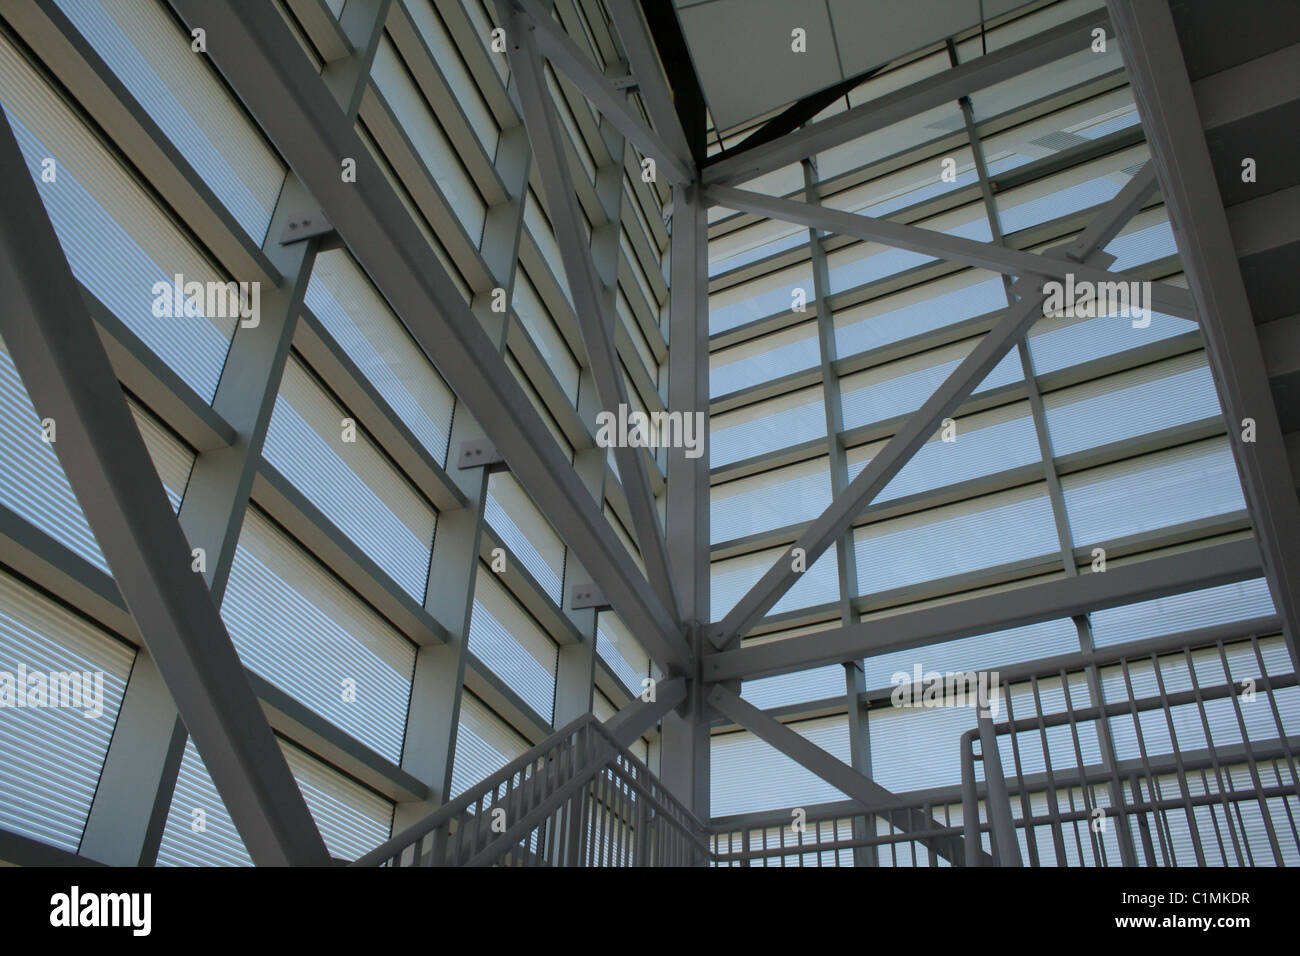 Light, air, glass and steel play together in this modern architectural stairwell. Stock Photo